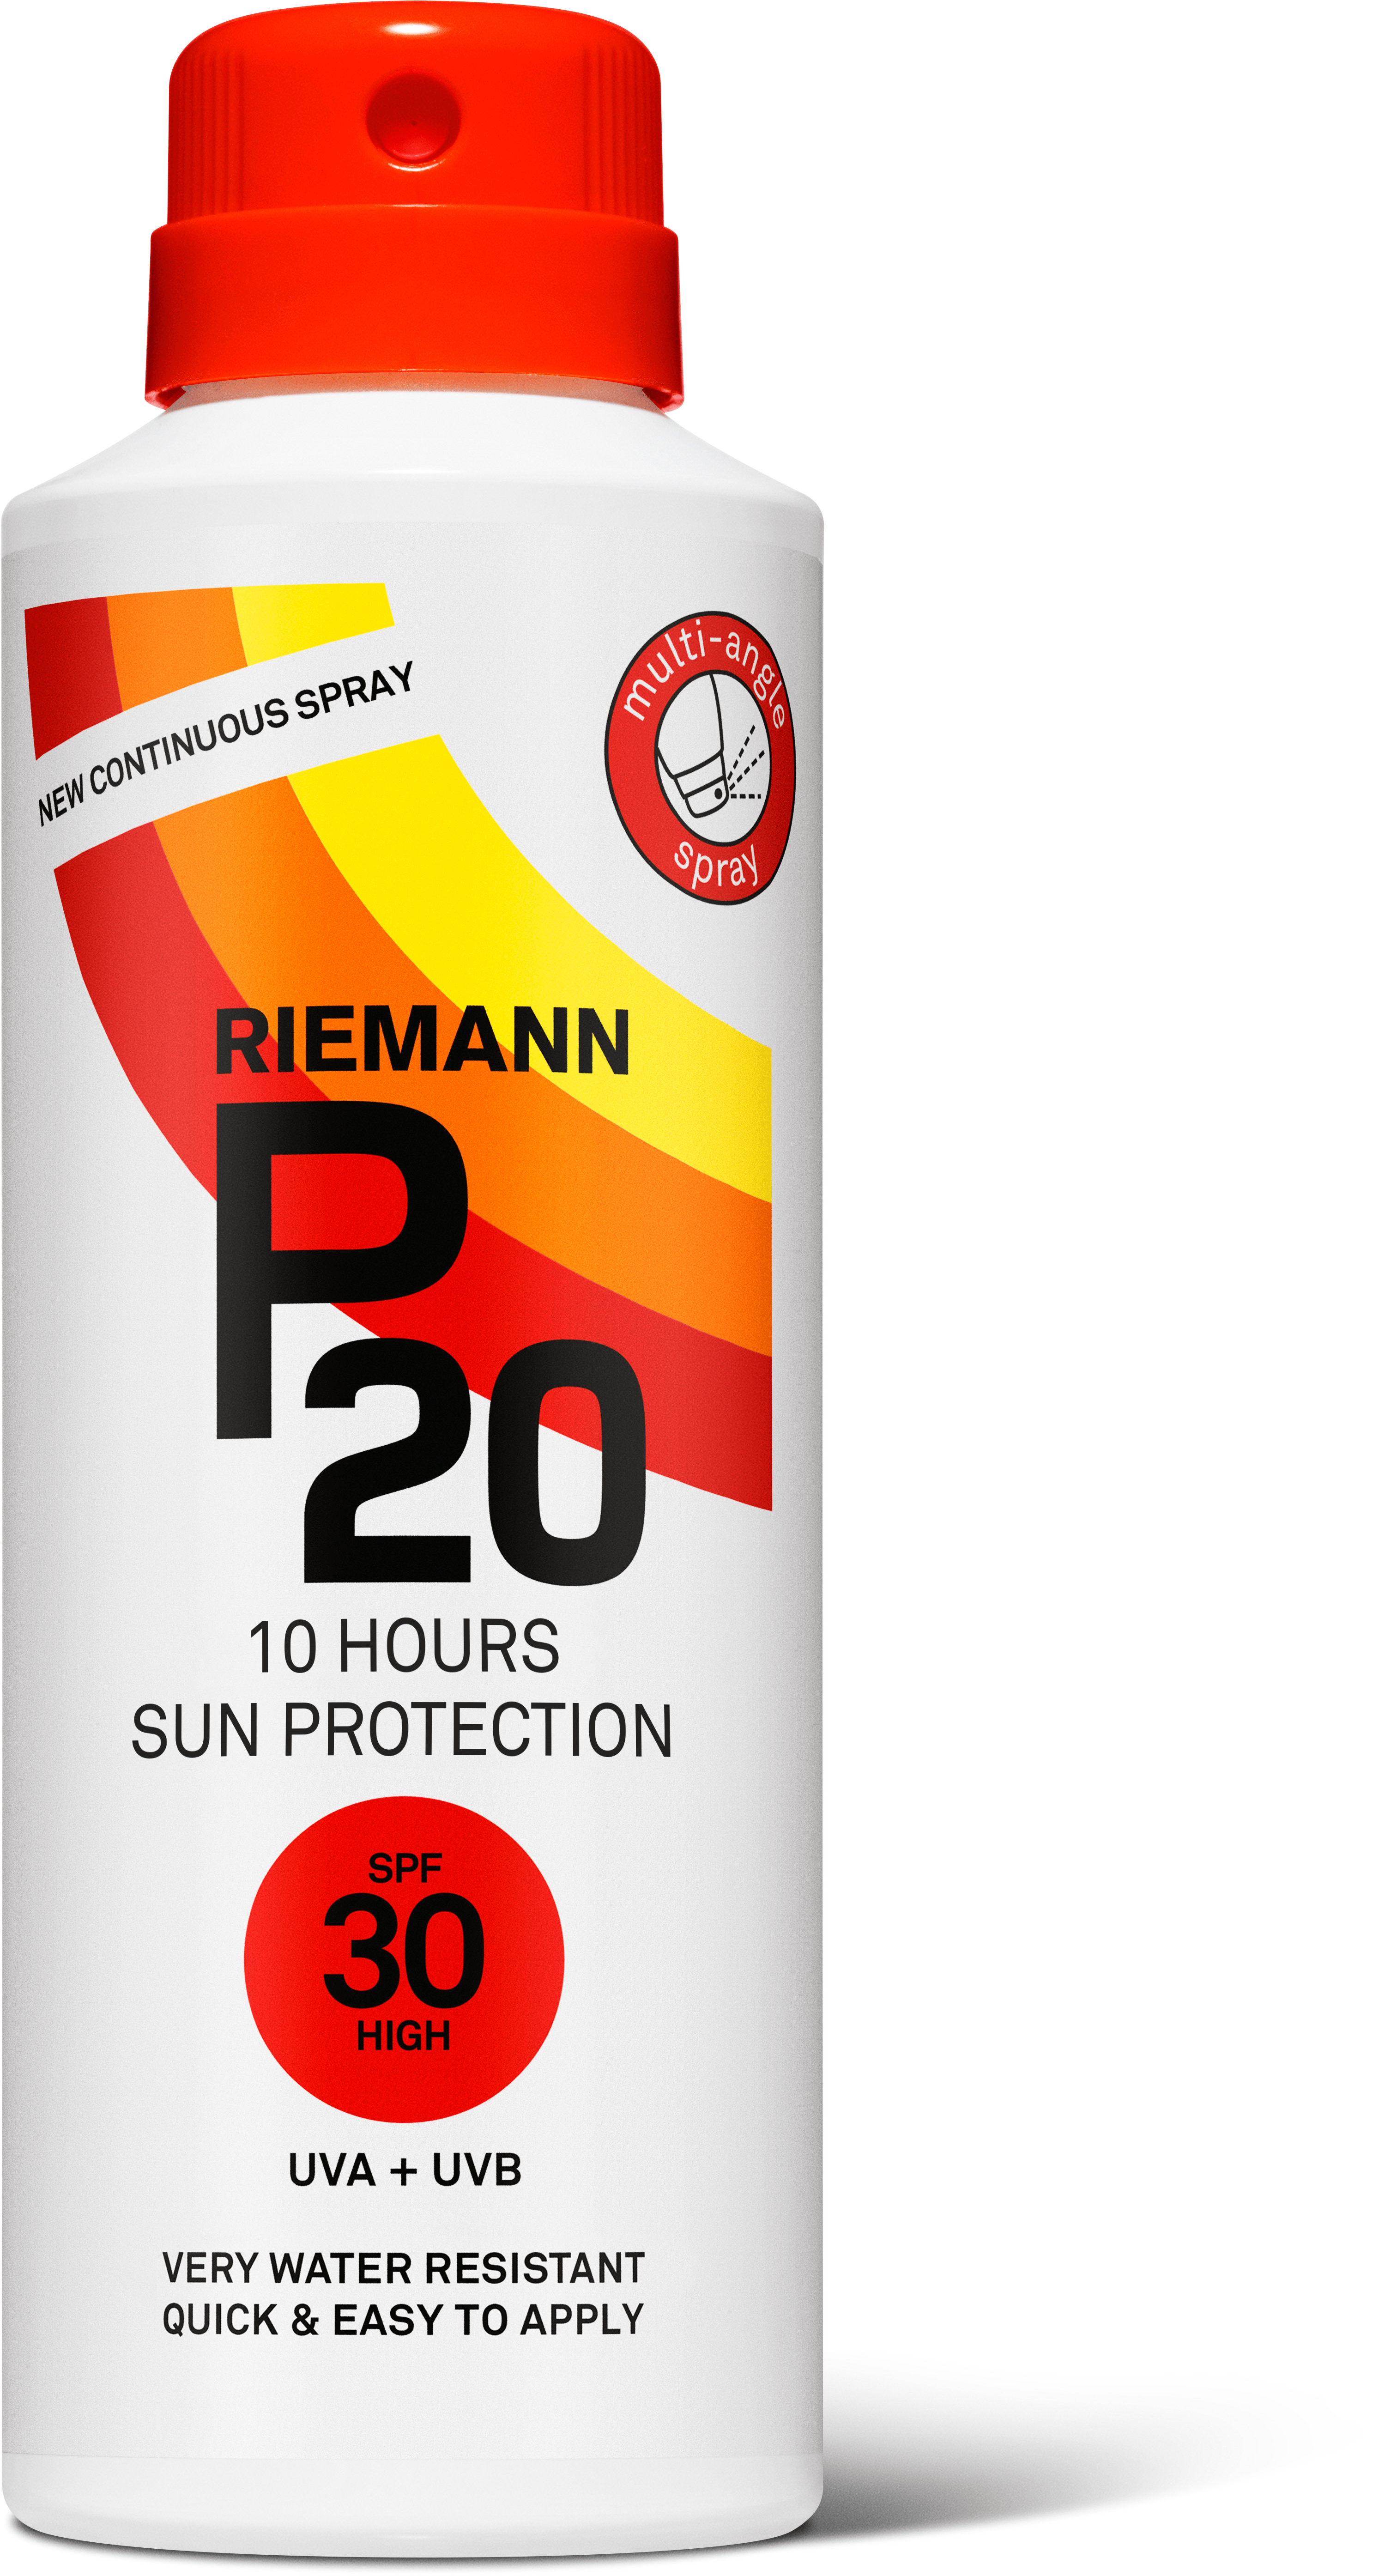 Riemann P20 Once a Day Continuous Spray SPF 30